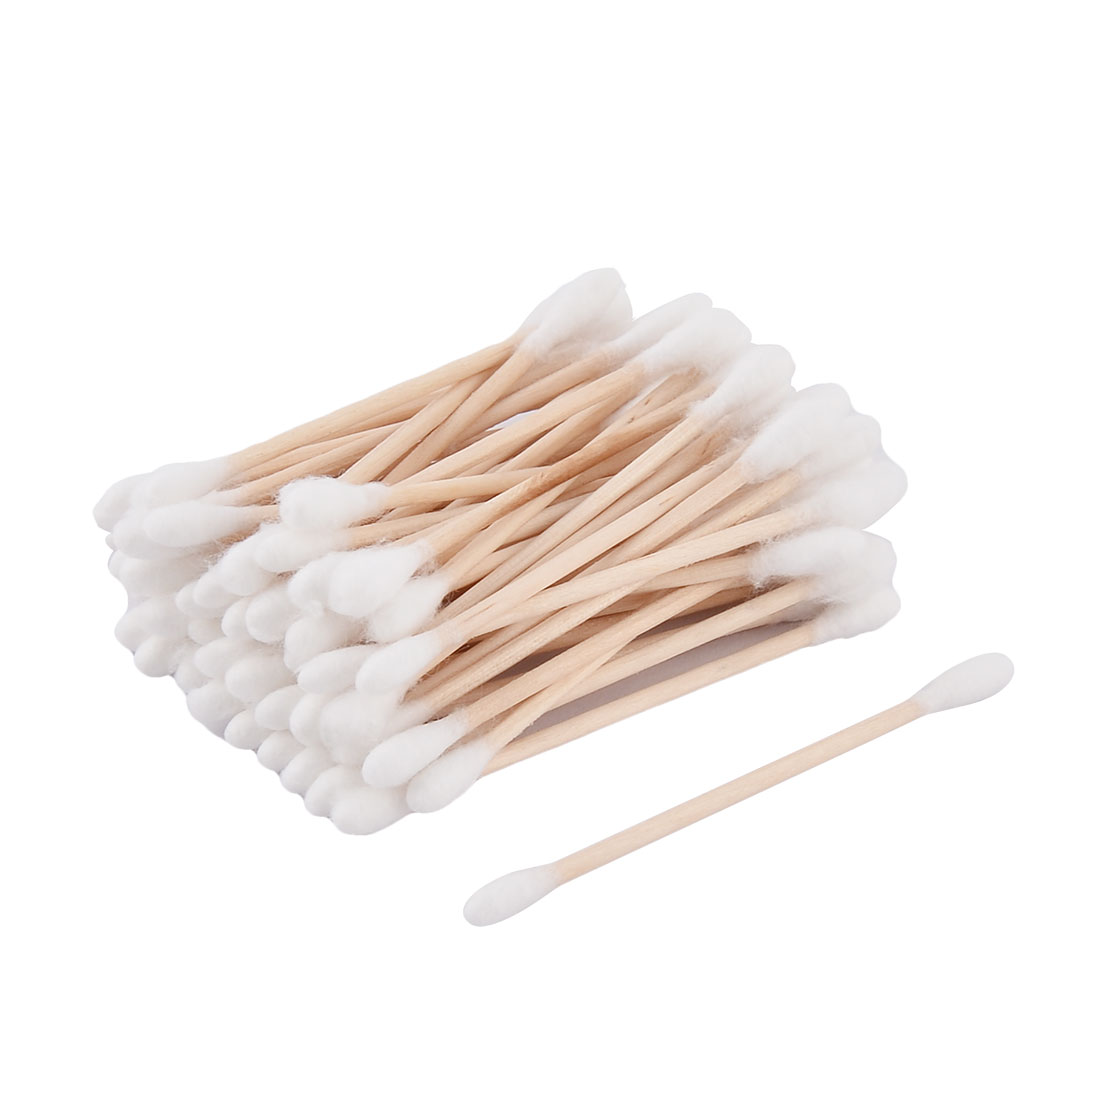 Wooden Rod Double Head Ear Cleaning Makeup Tool Cotton Swabs Bud 50 Pcs